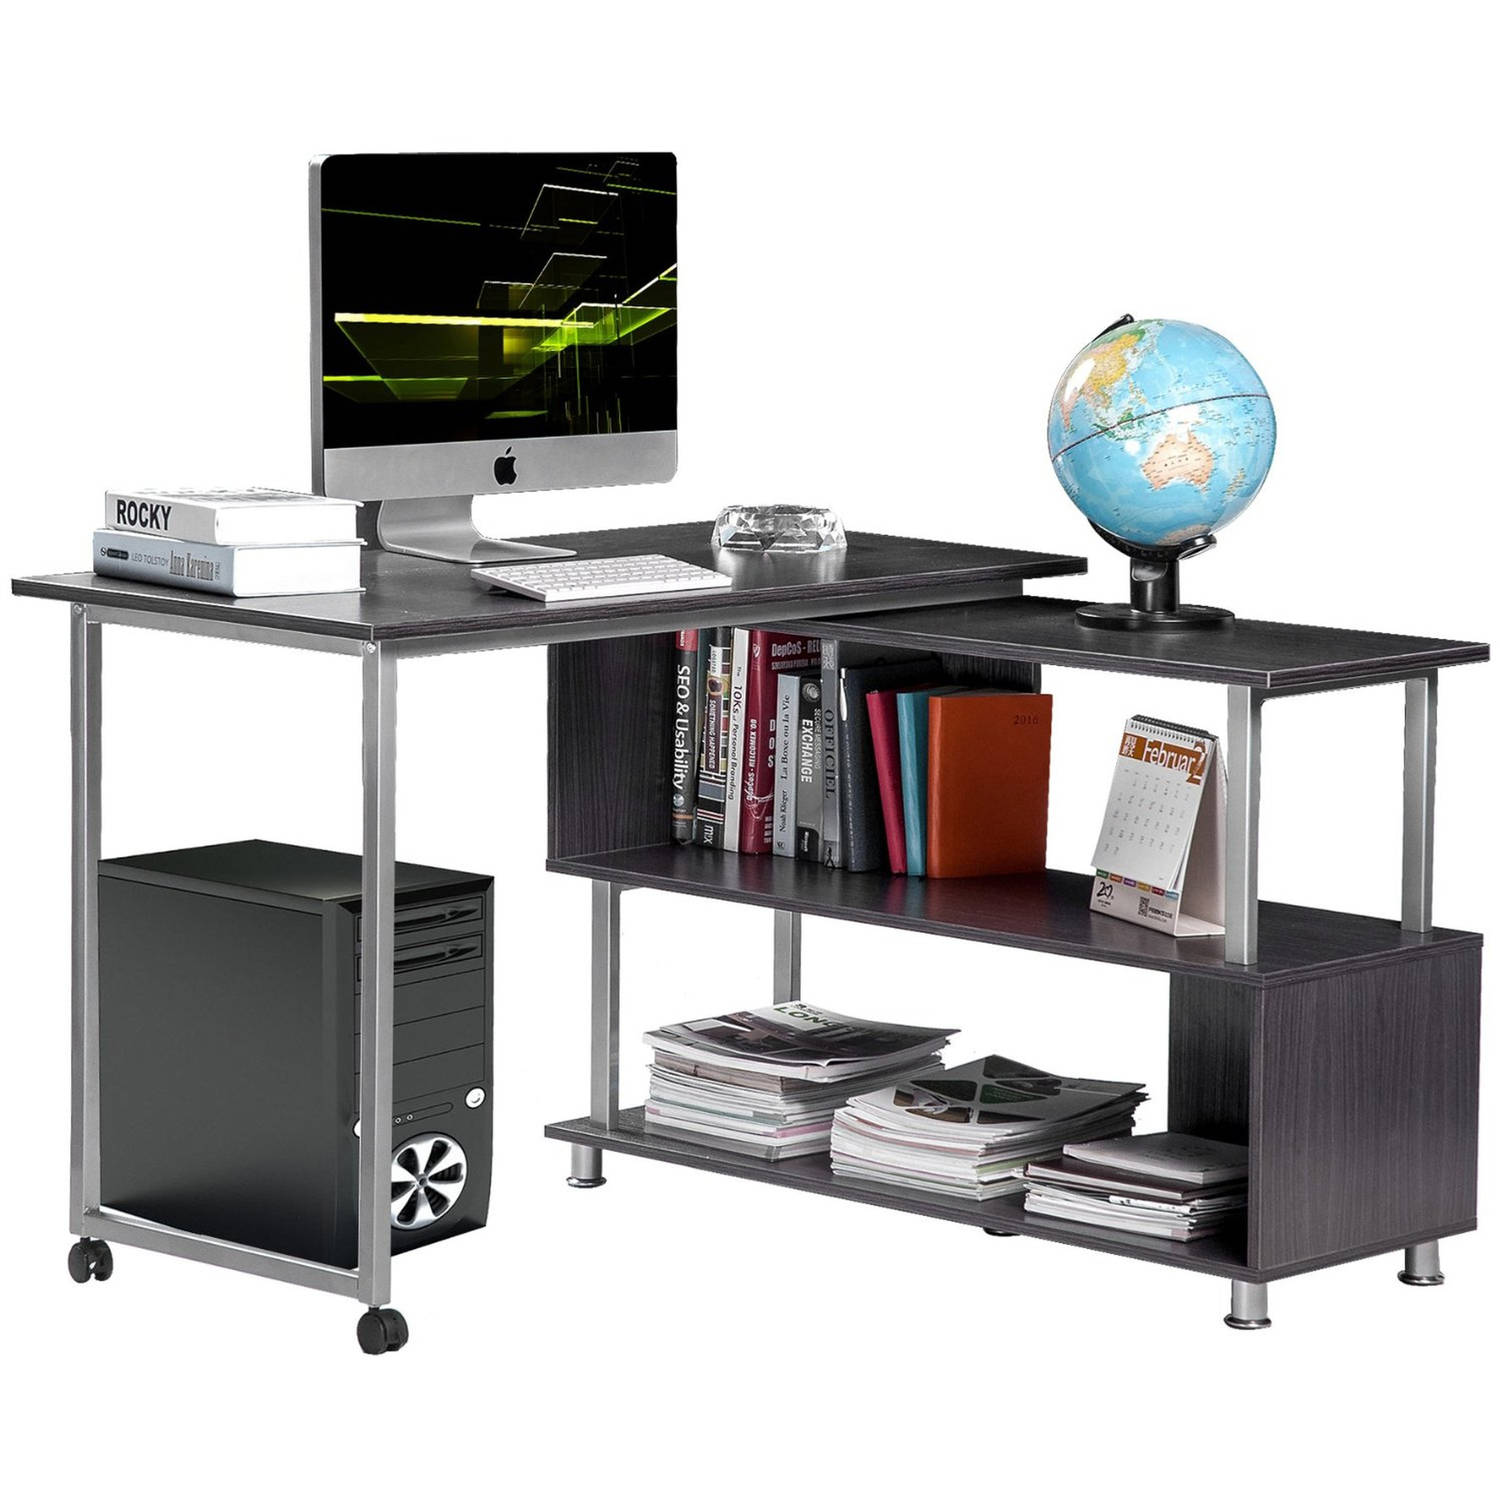 Rotatable L-shaped Computer Desk Convertible Office Corner Desk with Wheels, Gray